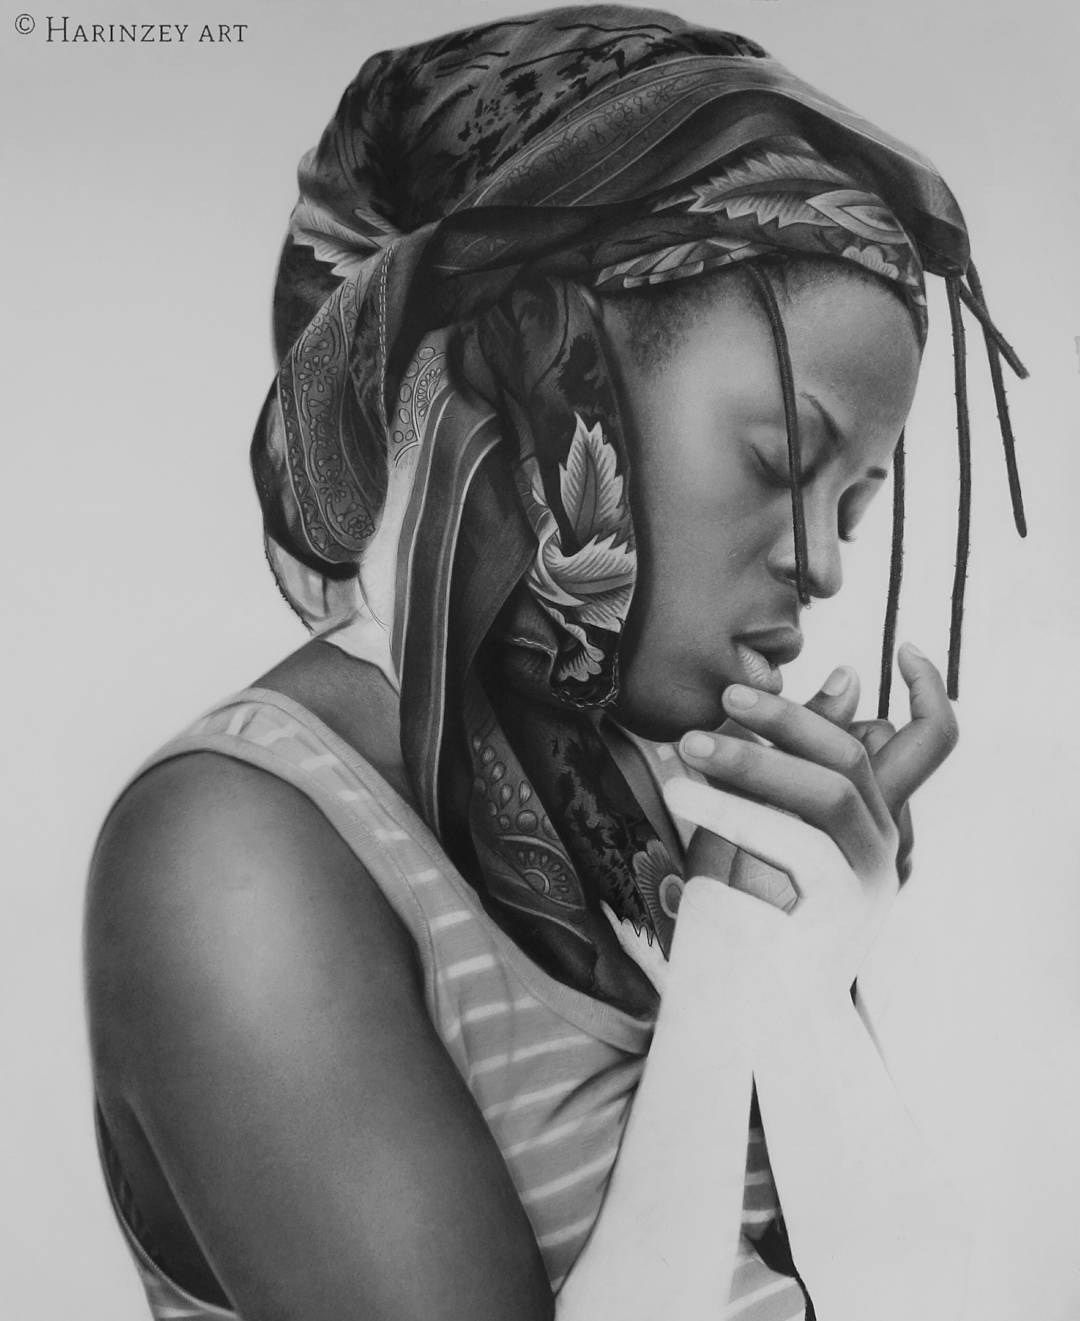 Hyper realistic pencil drawings by arinze stanley inspiration grid design inspiration